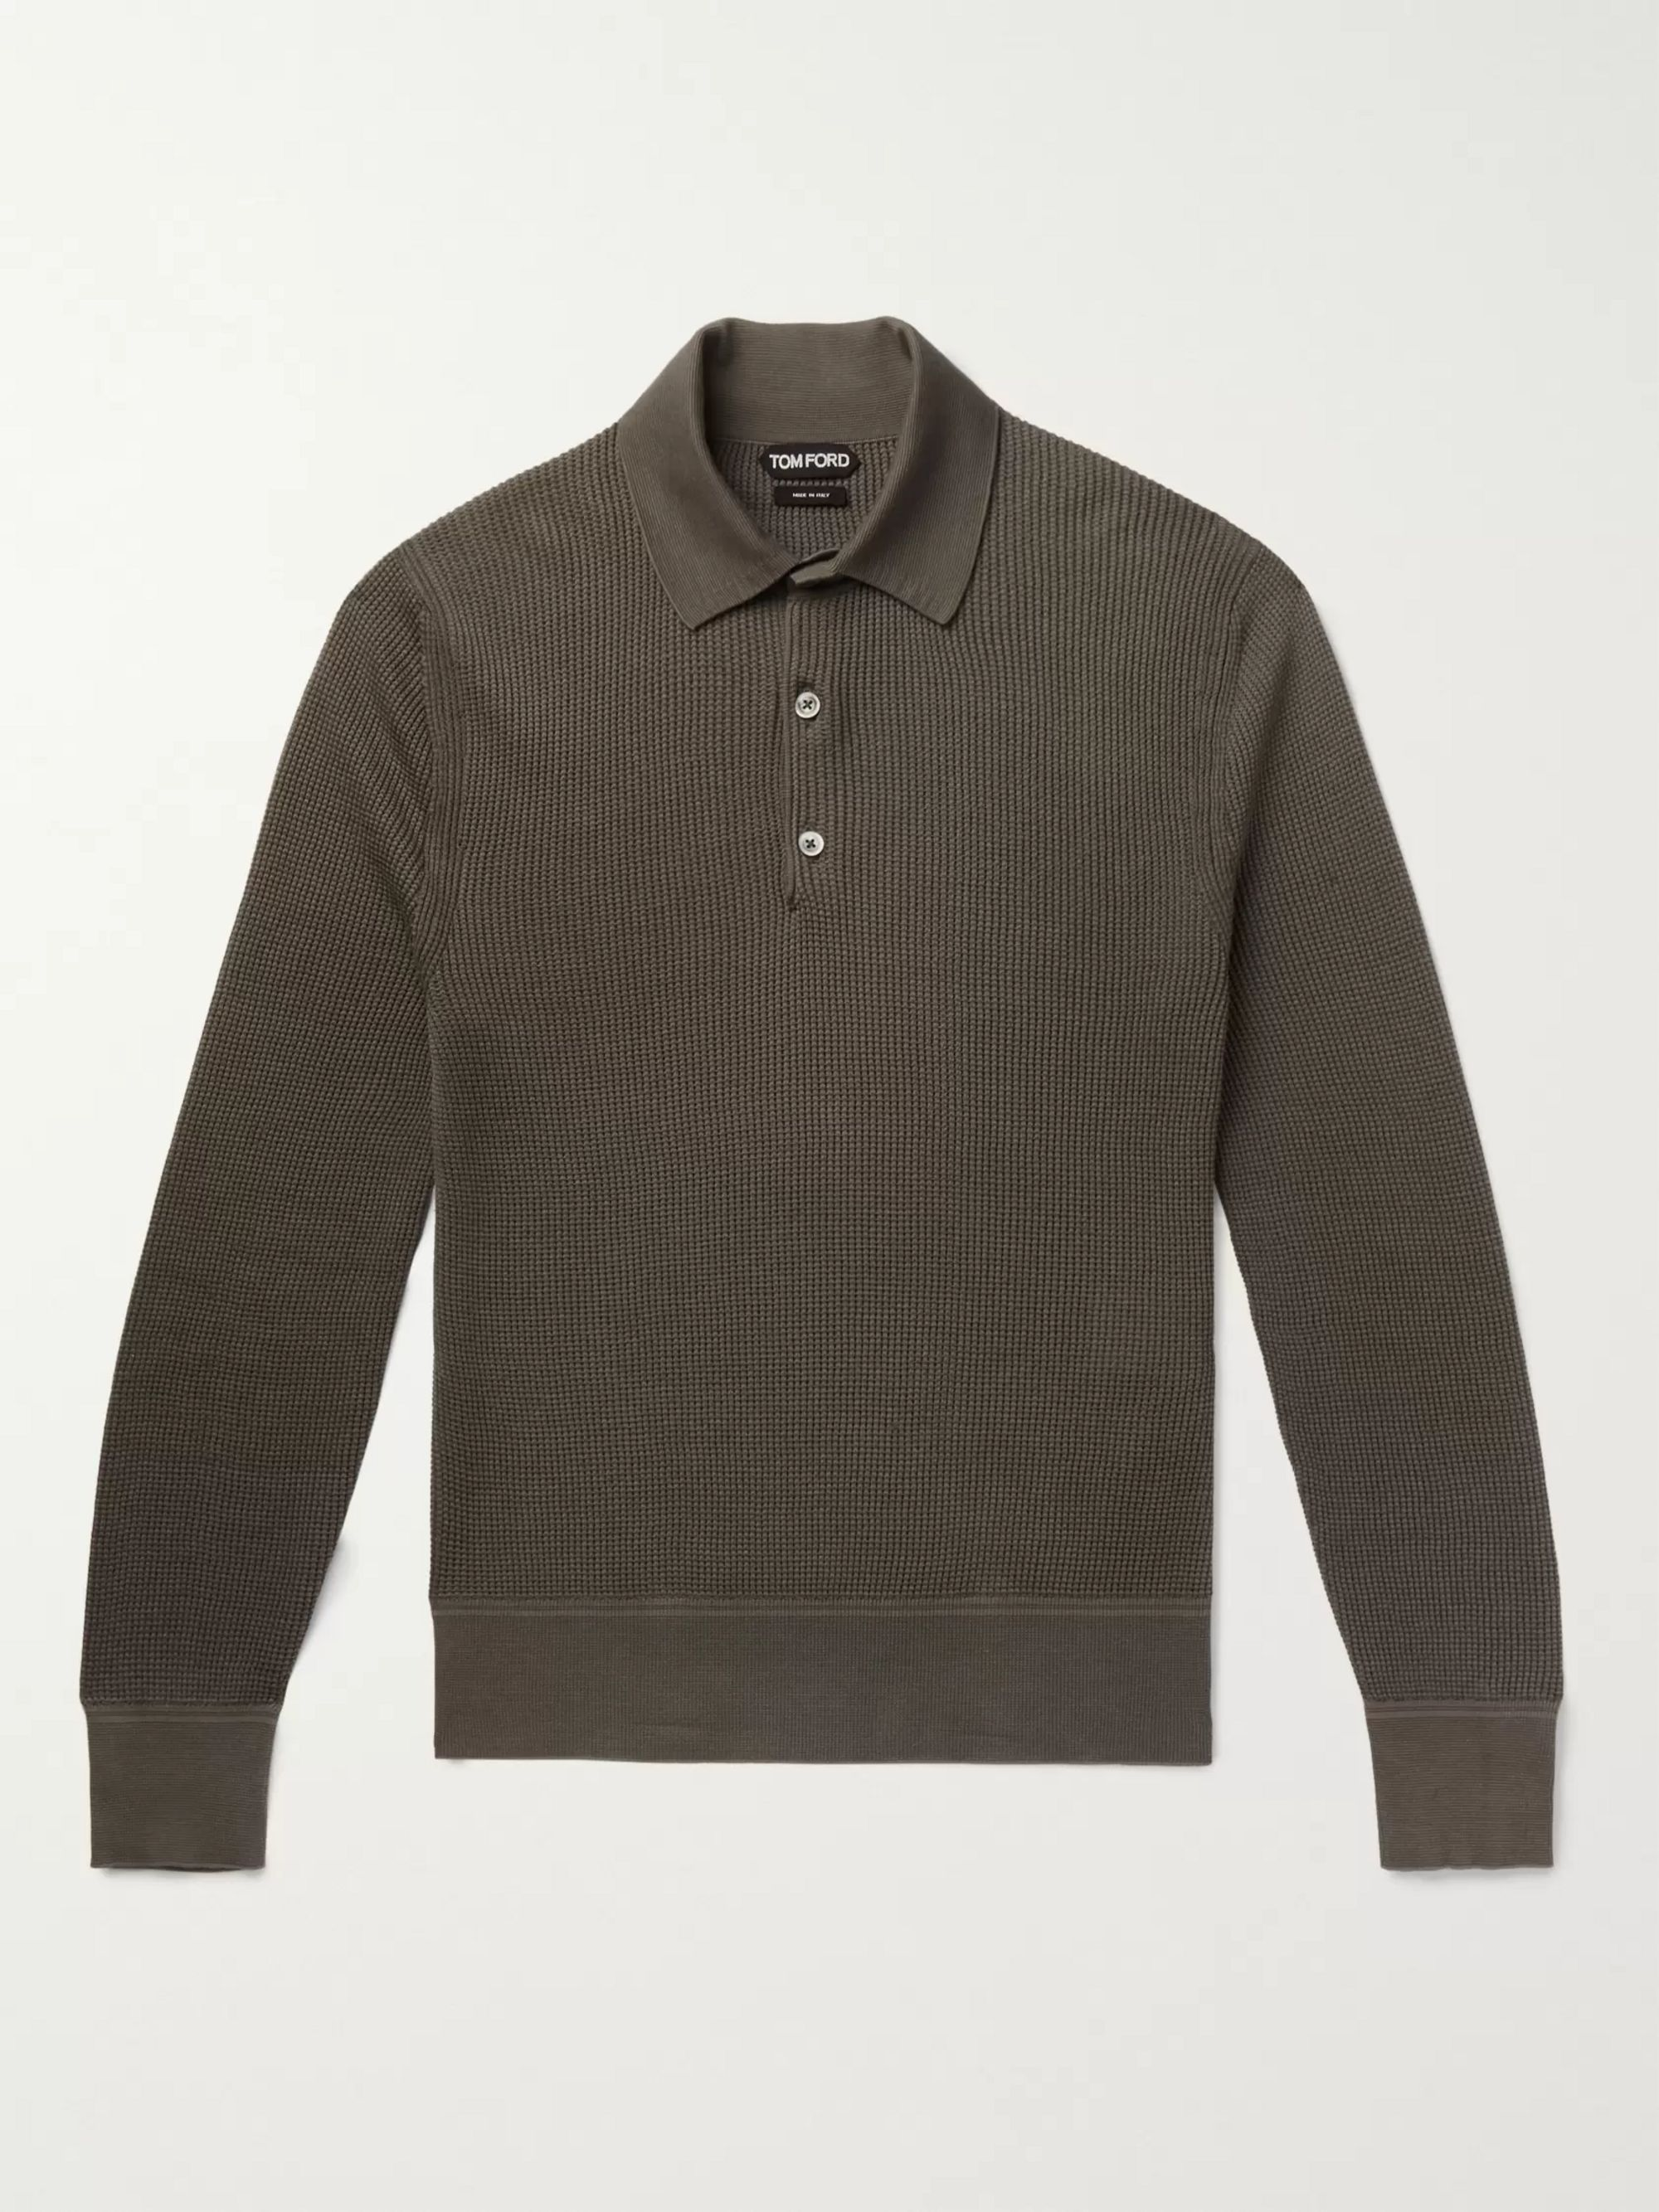 TOM FORD Slim-Fit Waffle-Knit Cotton-Blend Polo Shirt